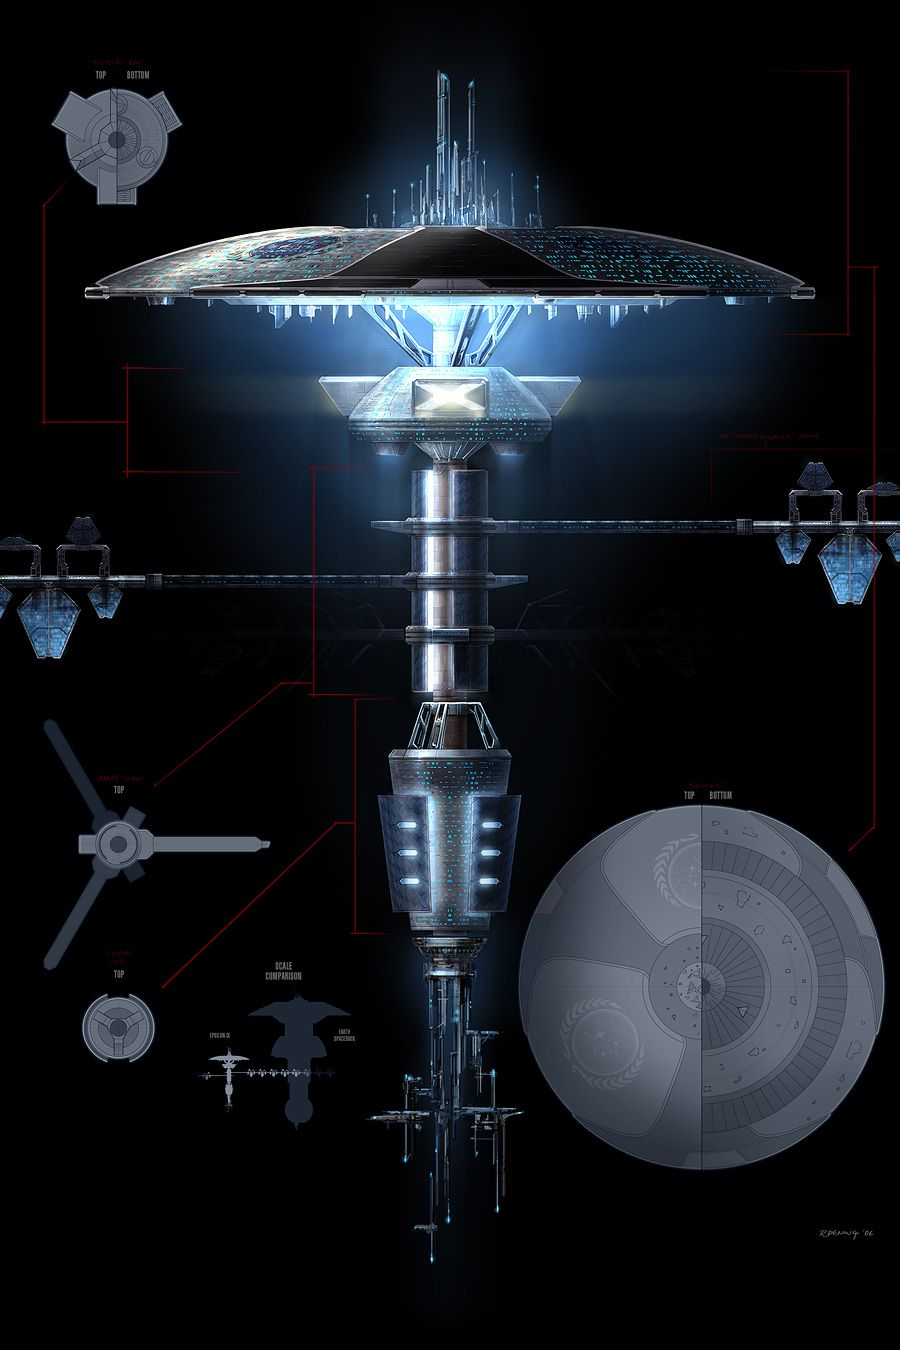 Colossalsized space station Starbase Orbital starship